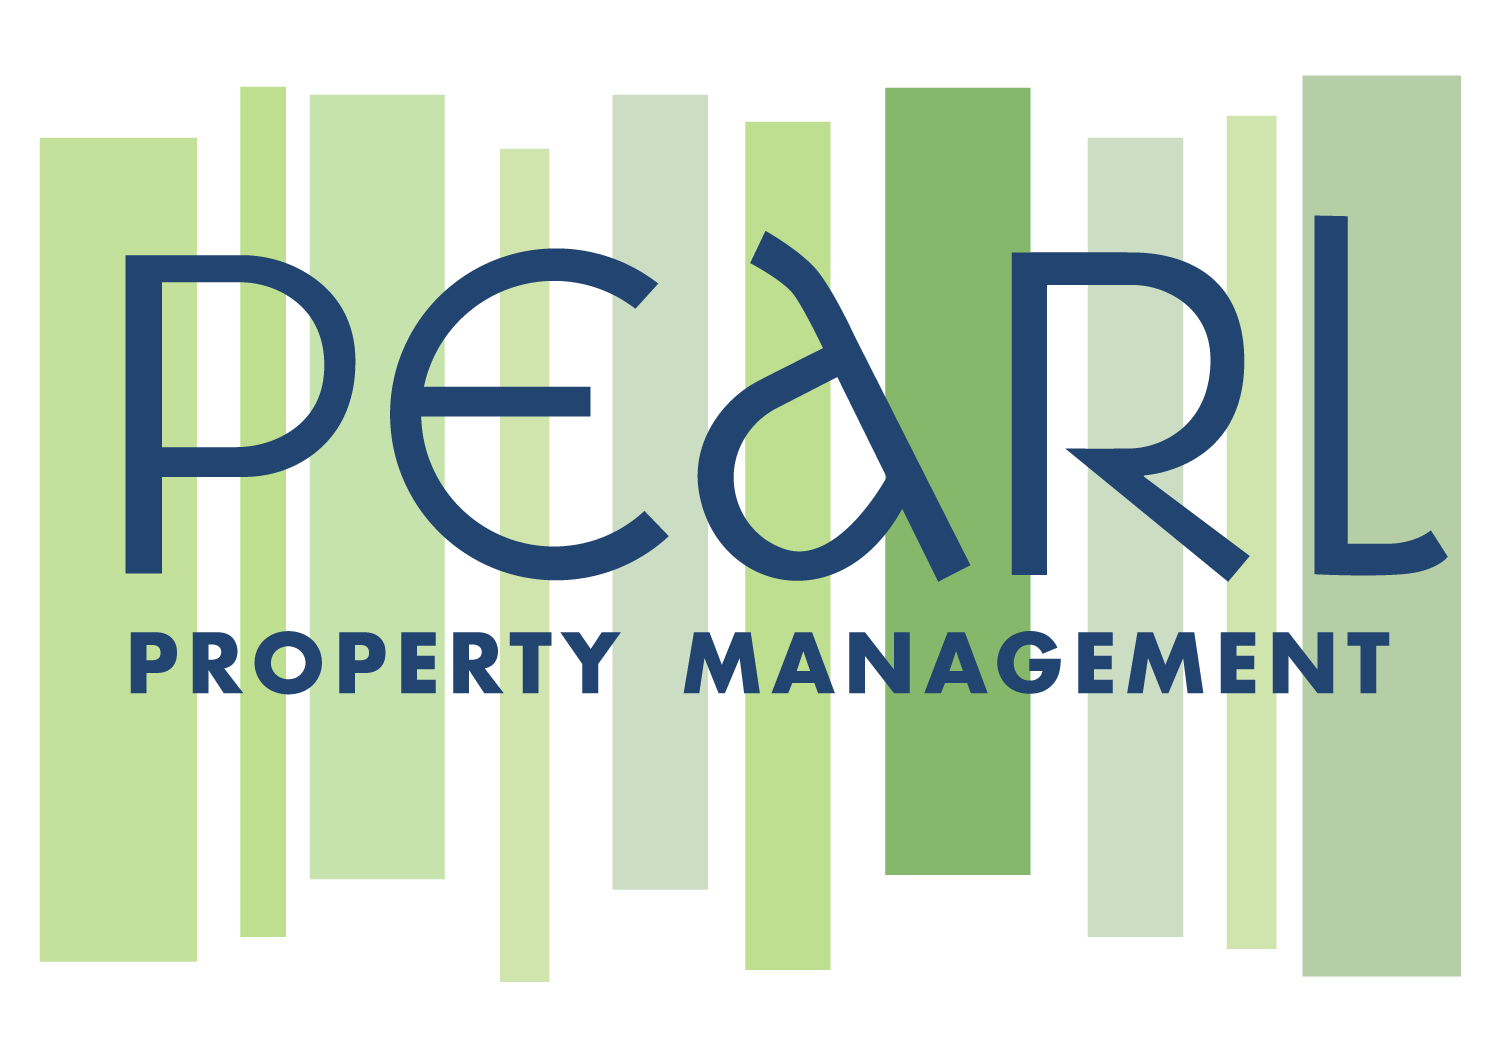 Pearl Property Management